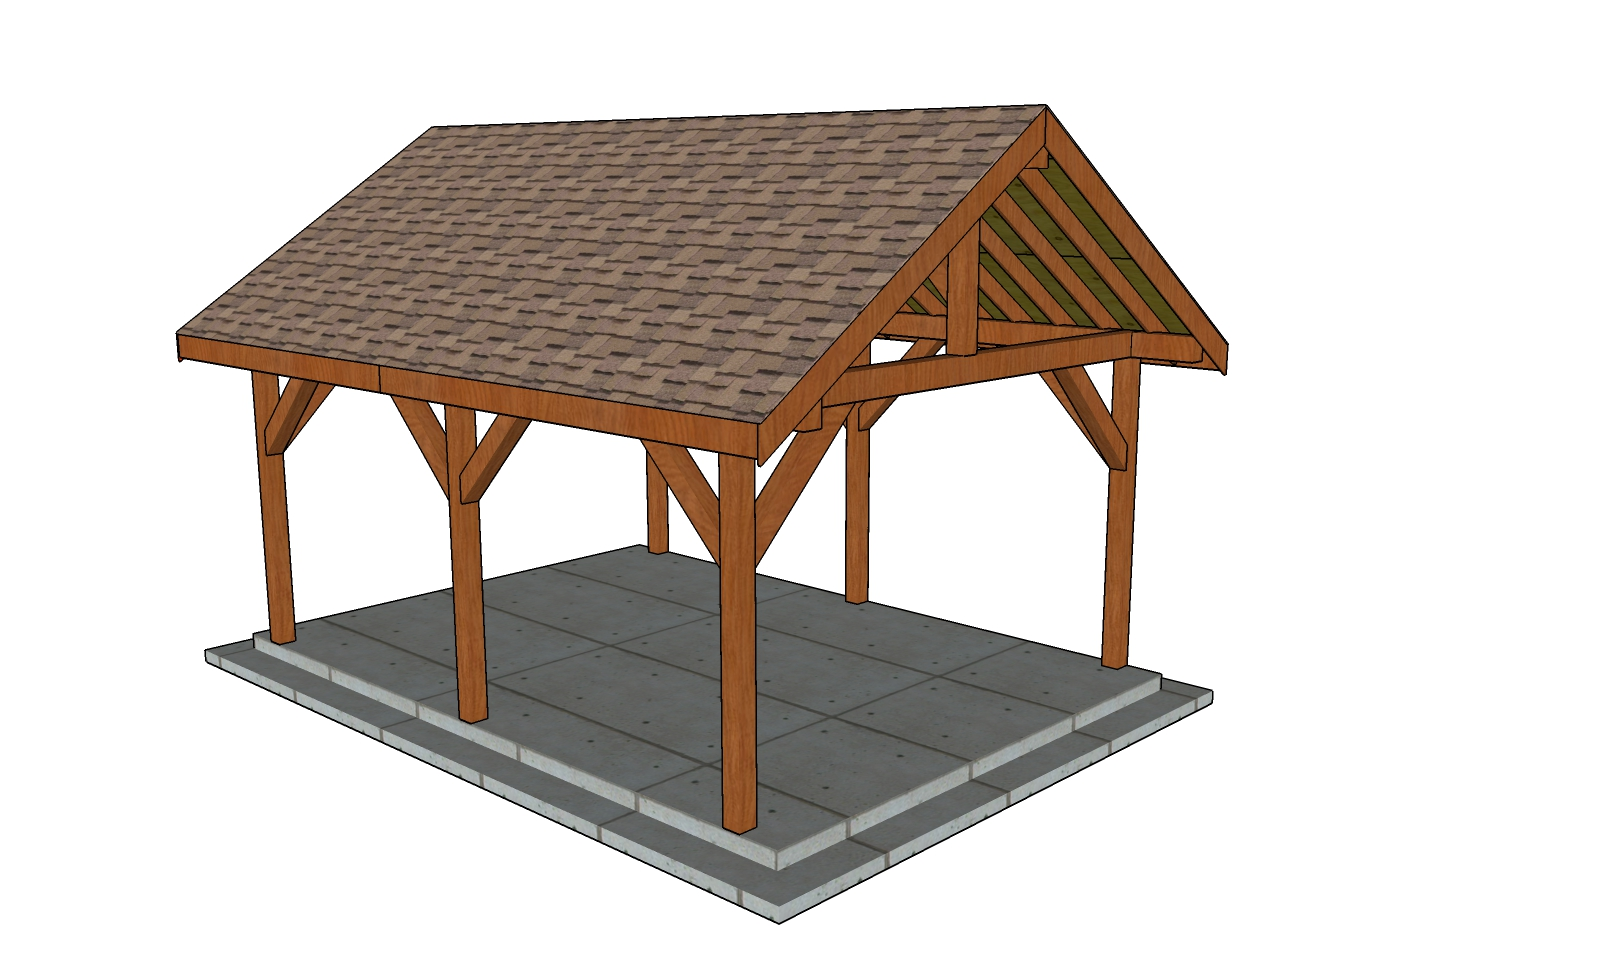 14x18 Gable Pavilion - Free DIY Plans